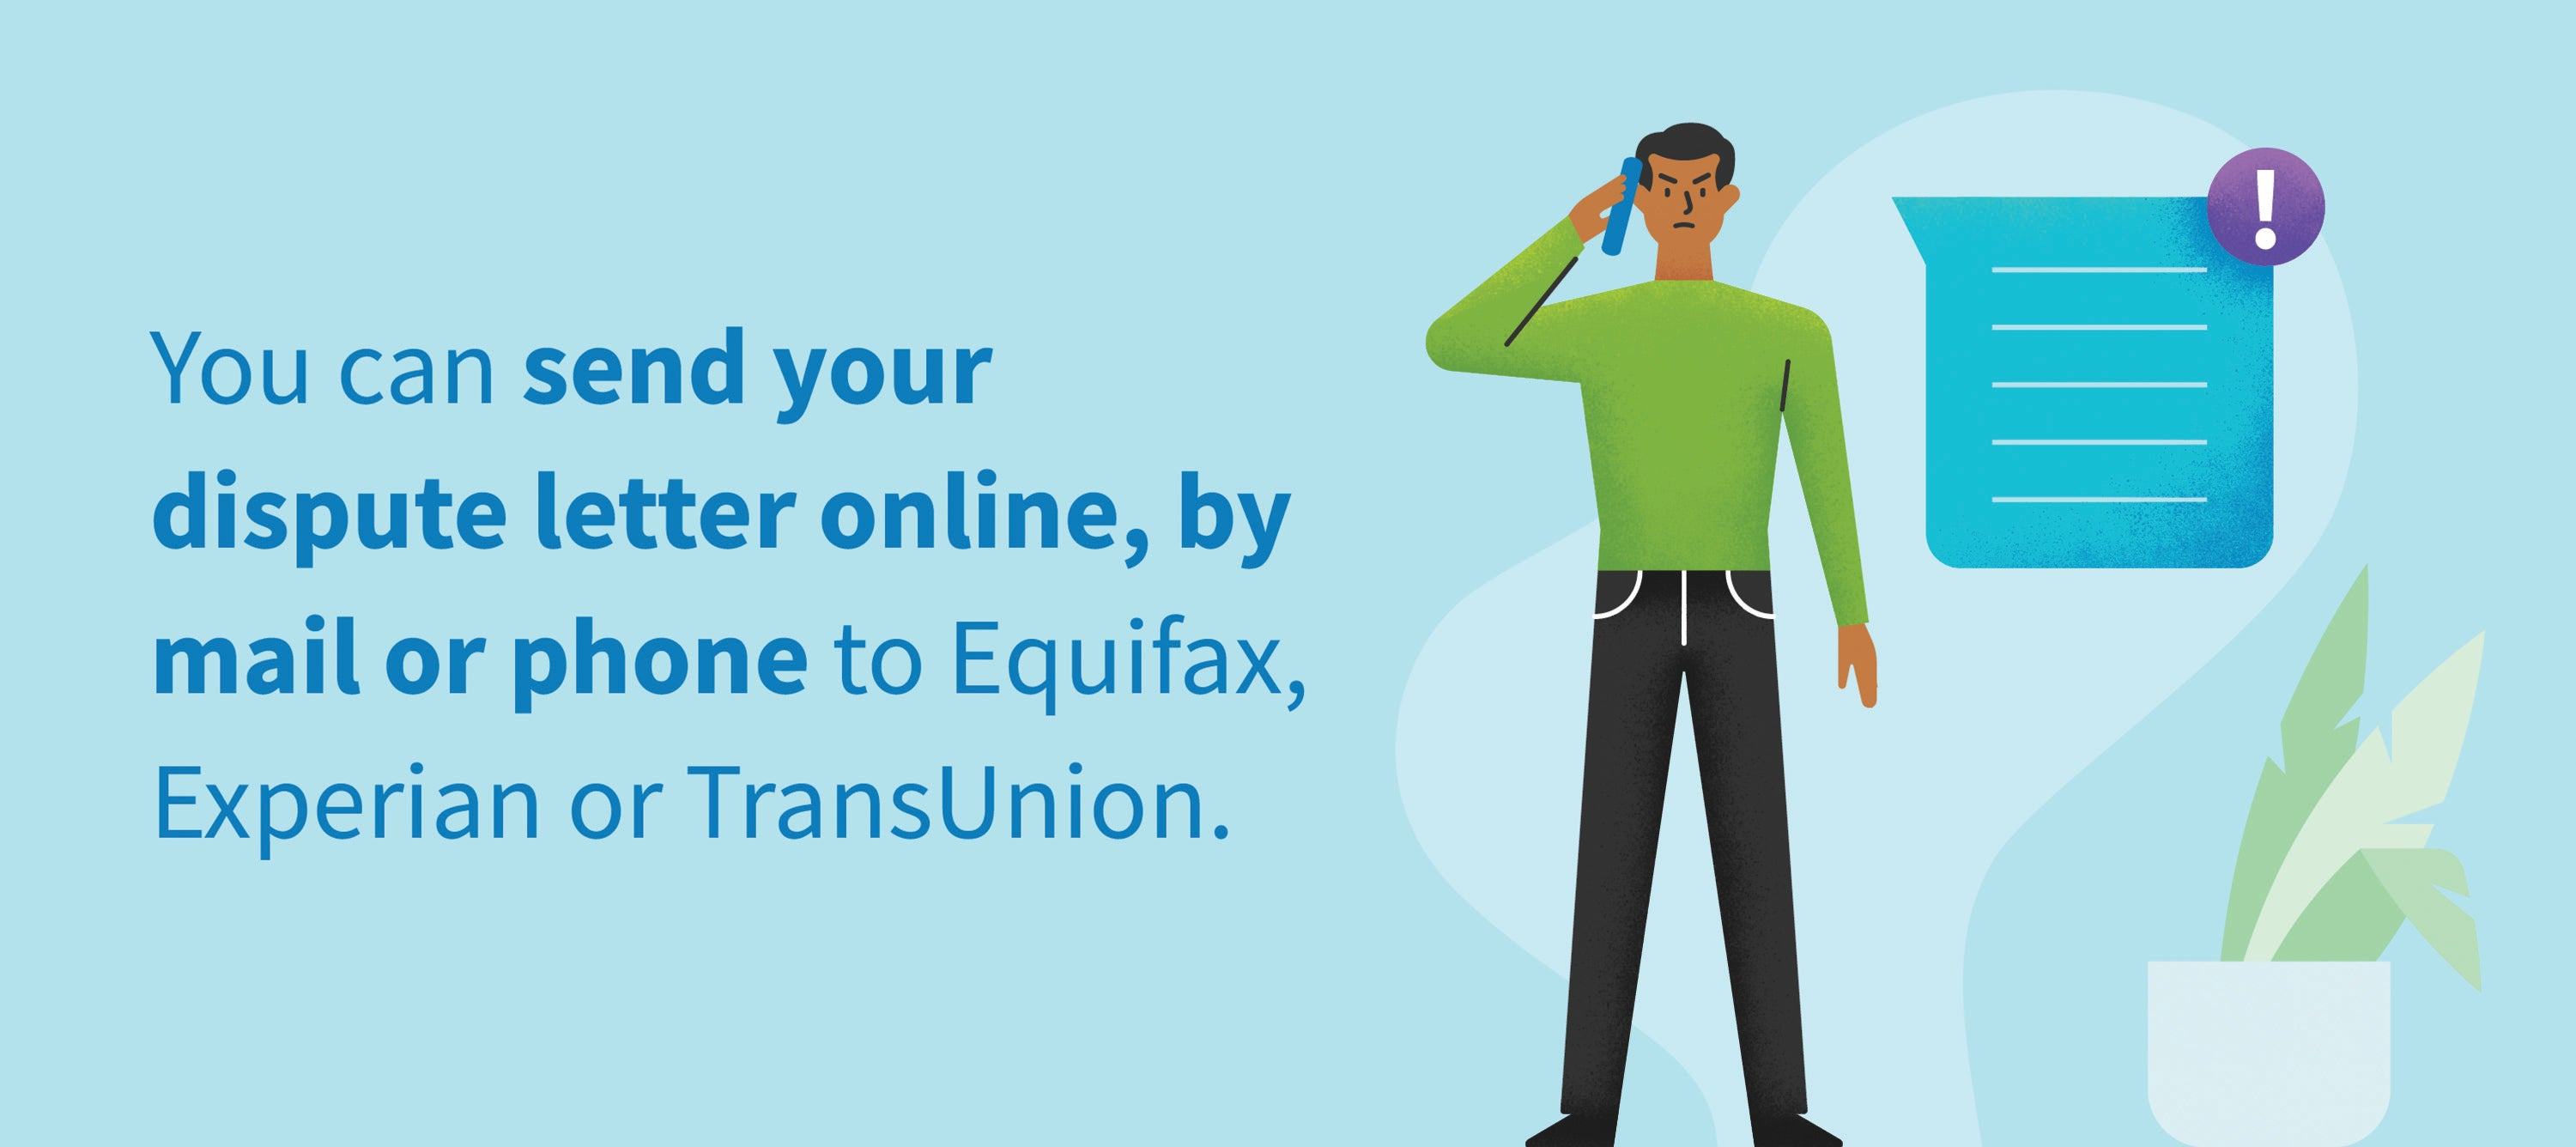 You can send your dispute letter online, by mail or phone to Equifax, Experian or TransUnion.